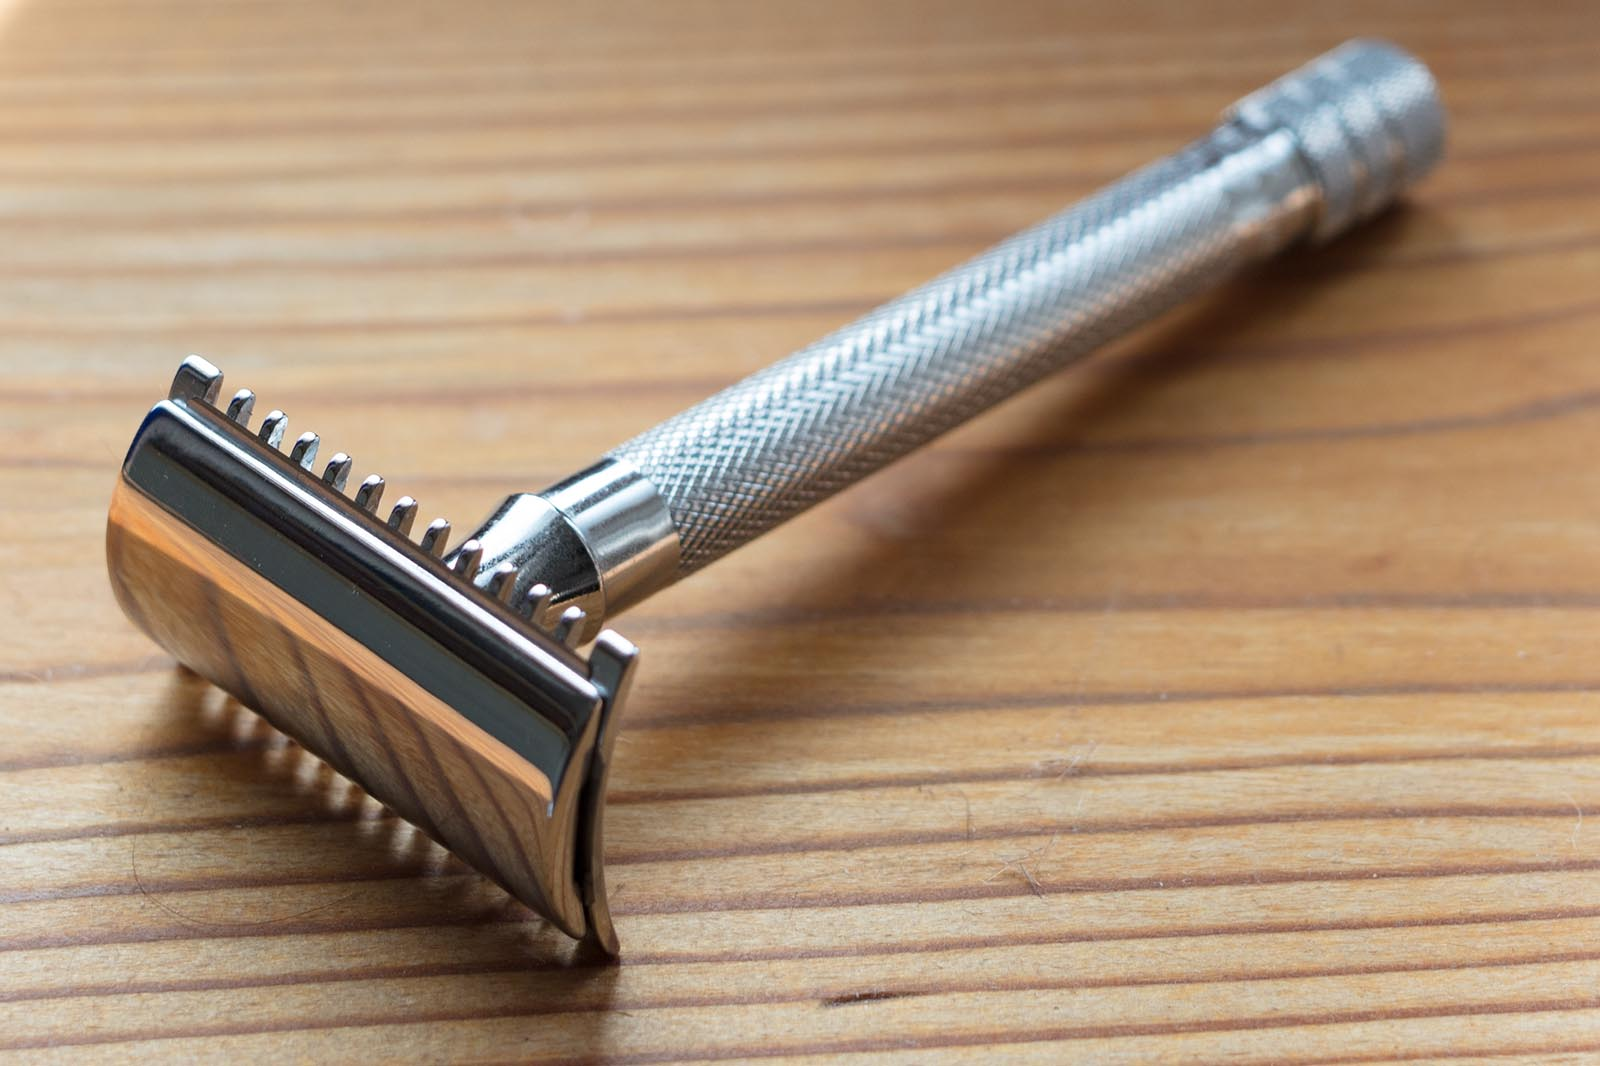 My double-edge safety razor.